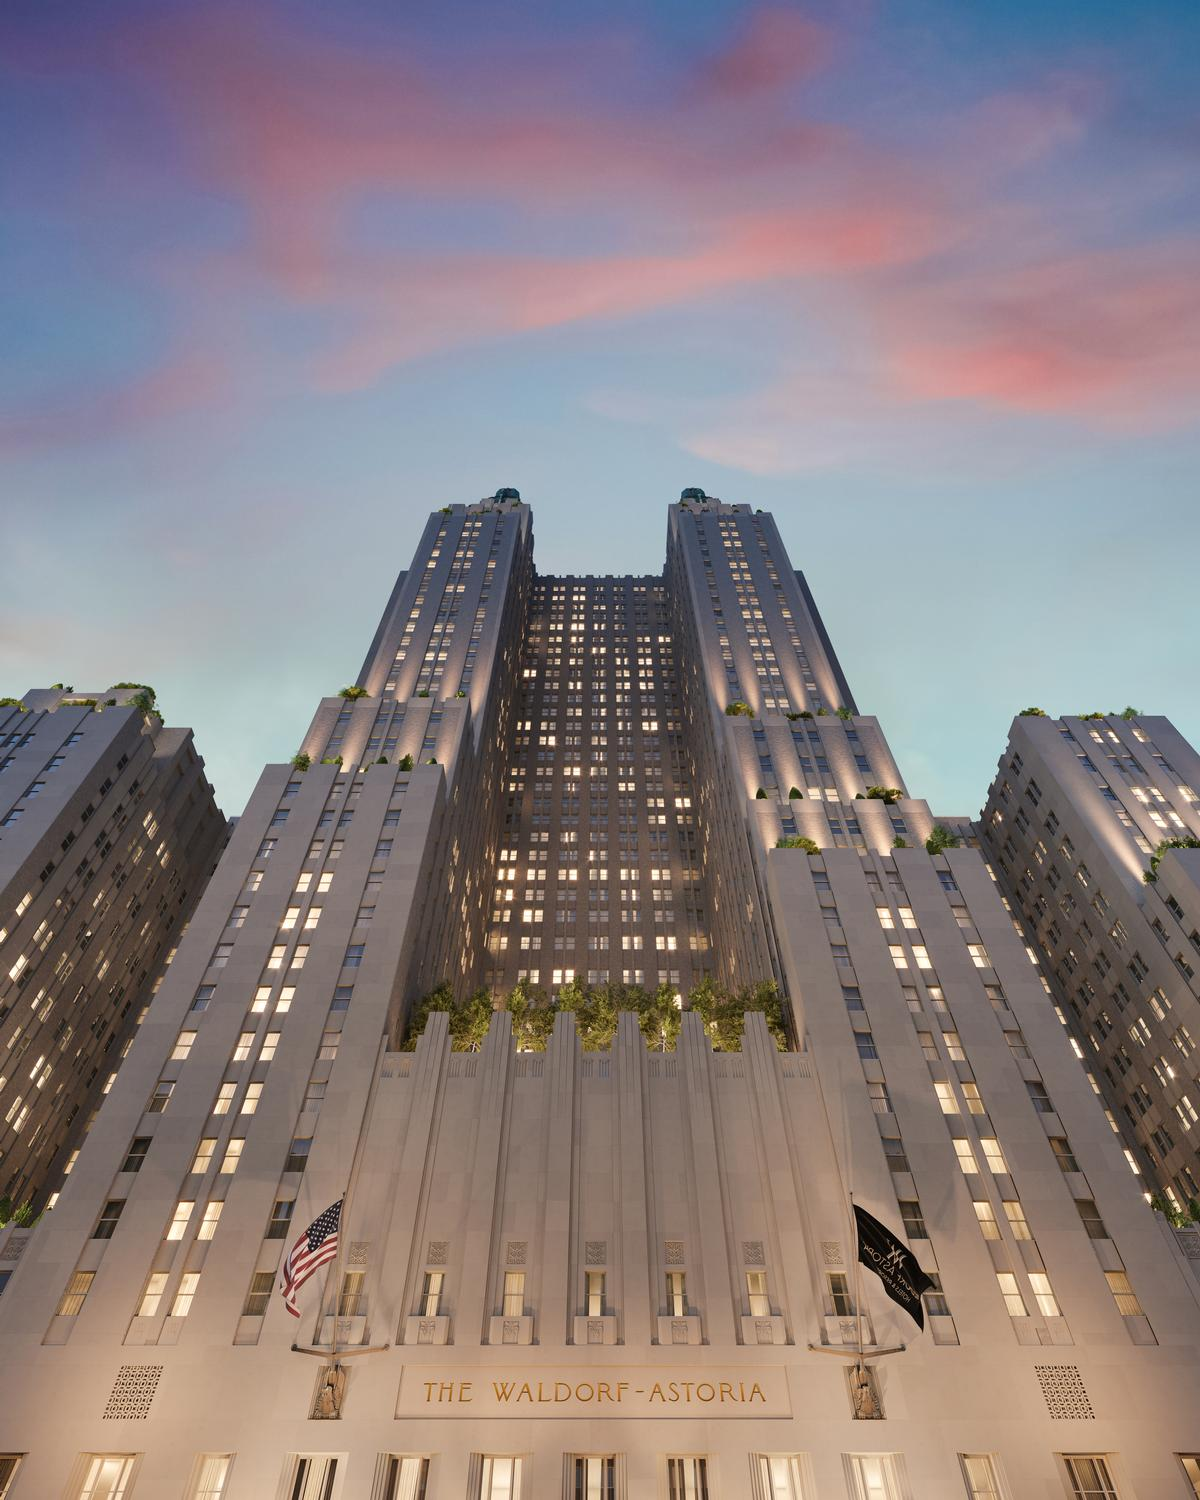 The Waldorf Astoria was originally designed by Schultze and Weaver